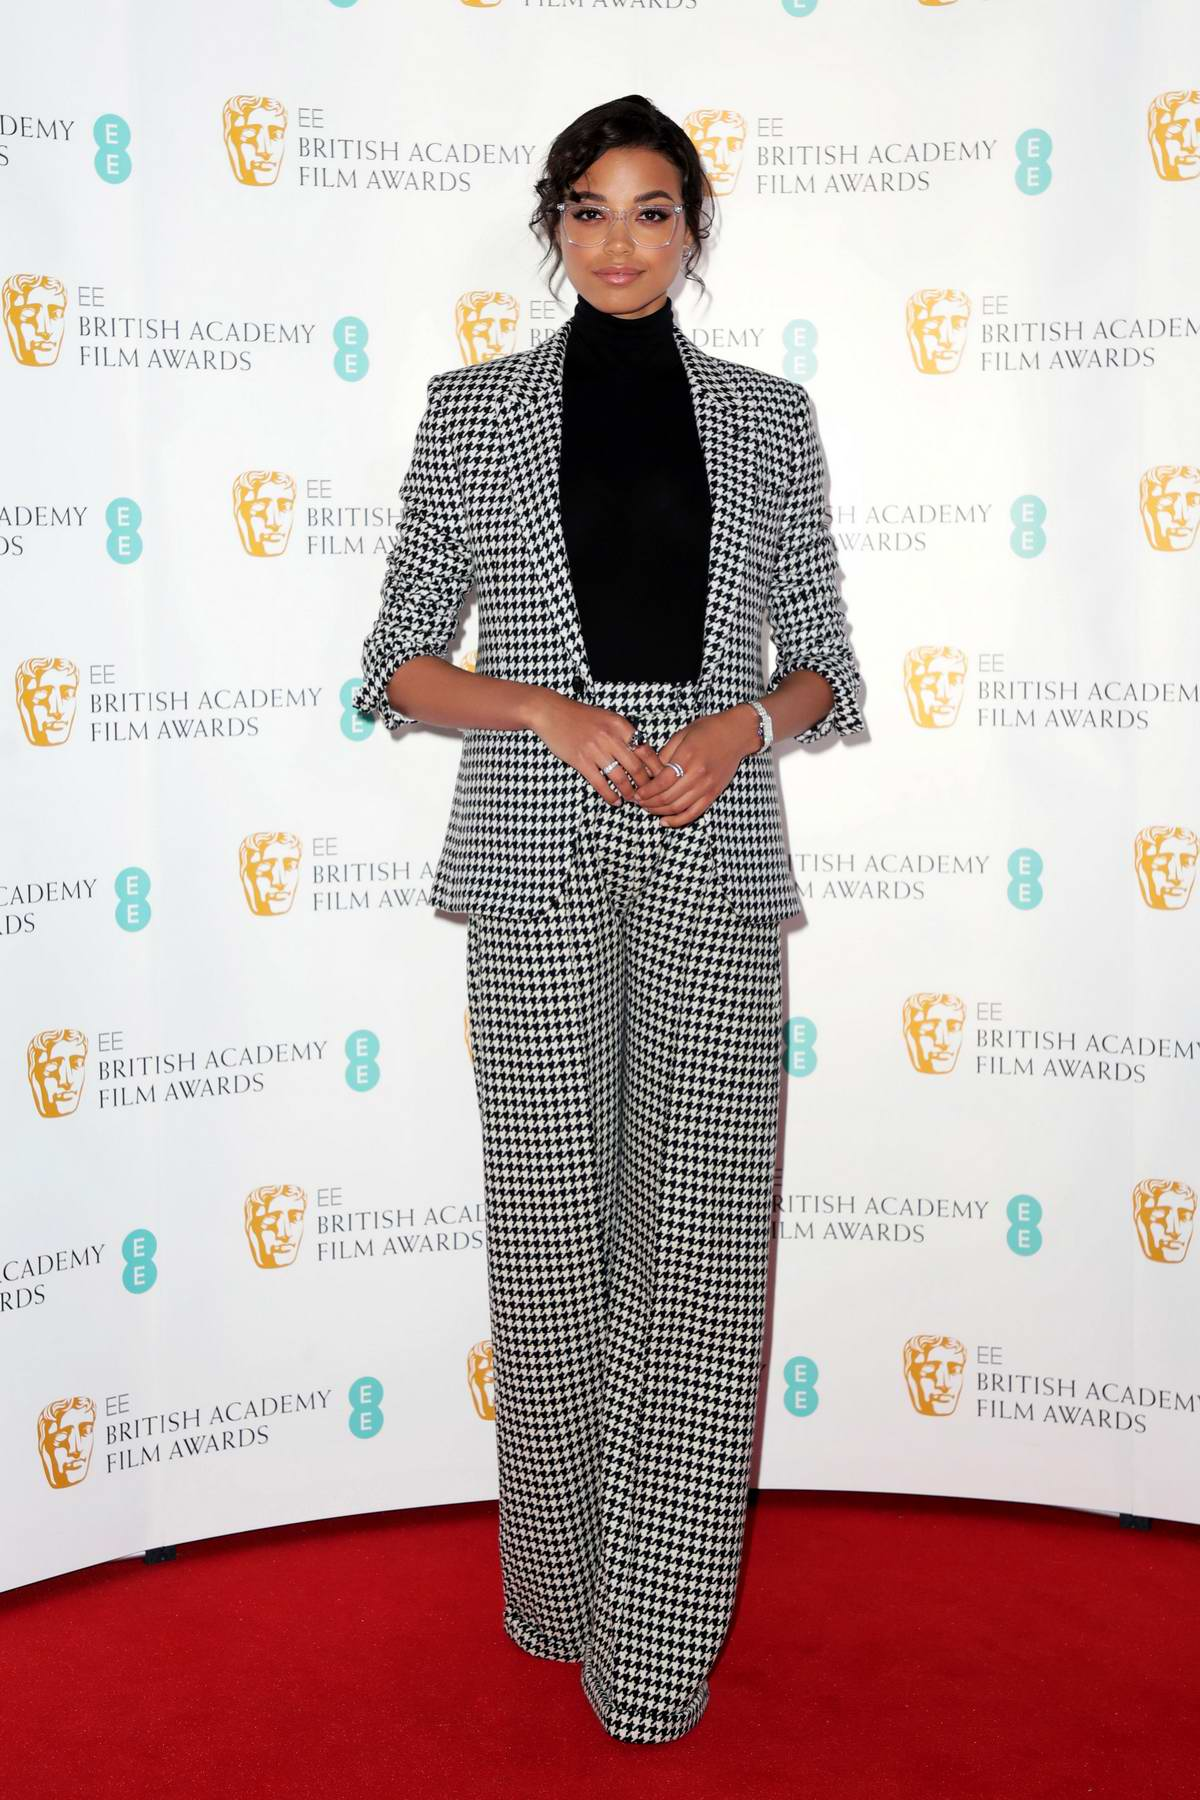 Ella Balinska attends the BAFTA Film Awards Nominations Announcement 2020 photocall in London, UK